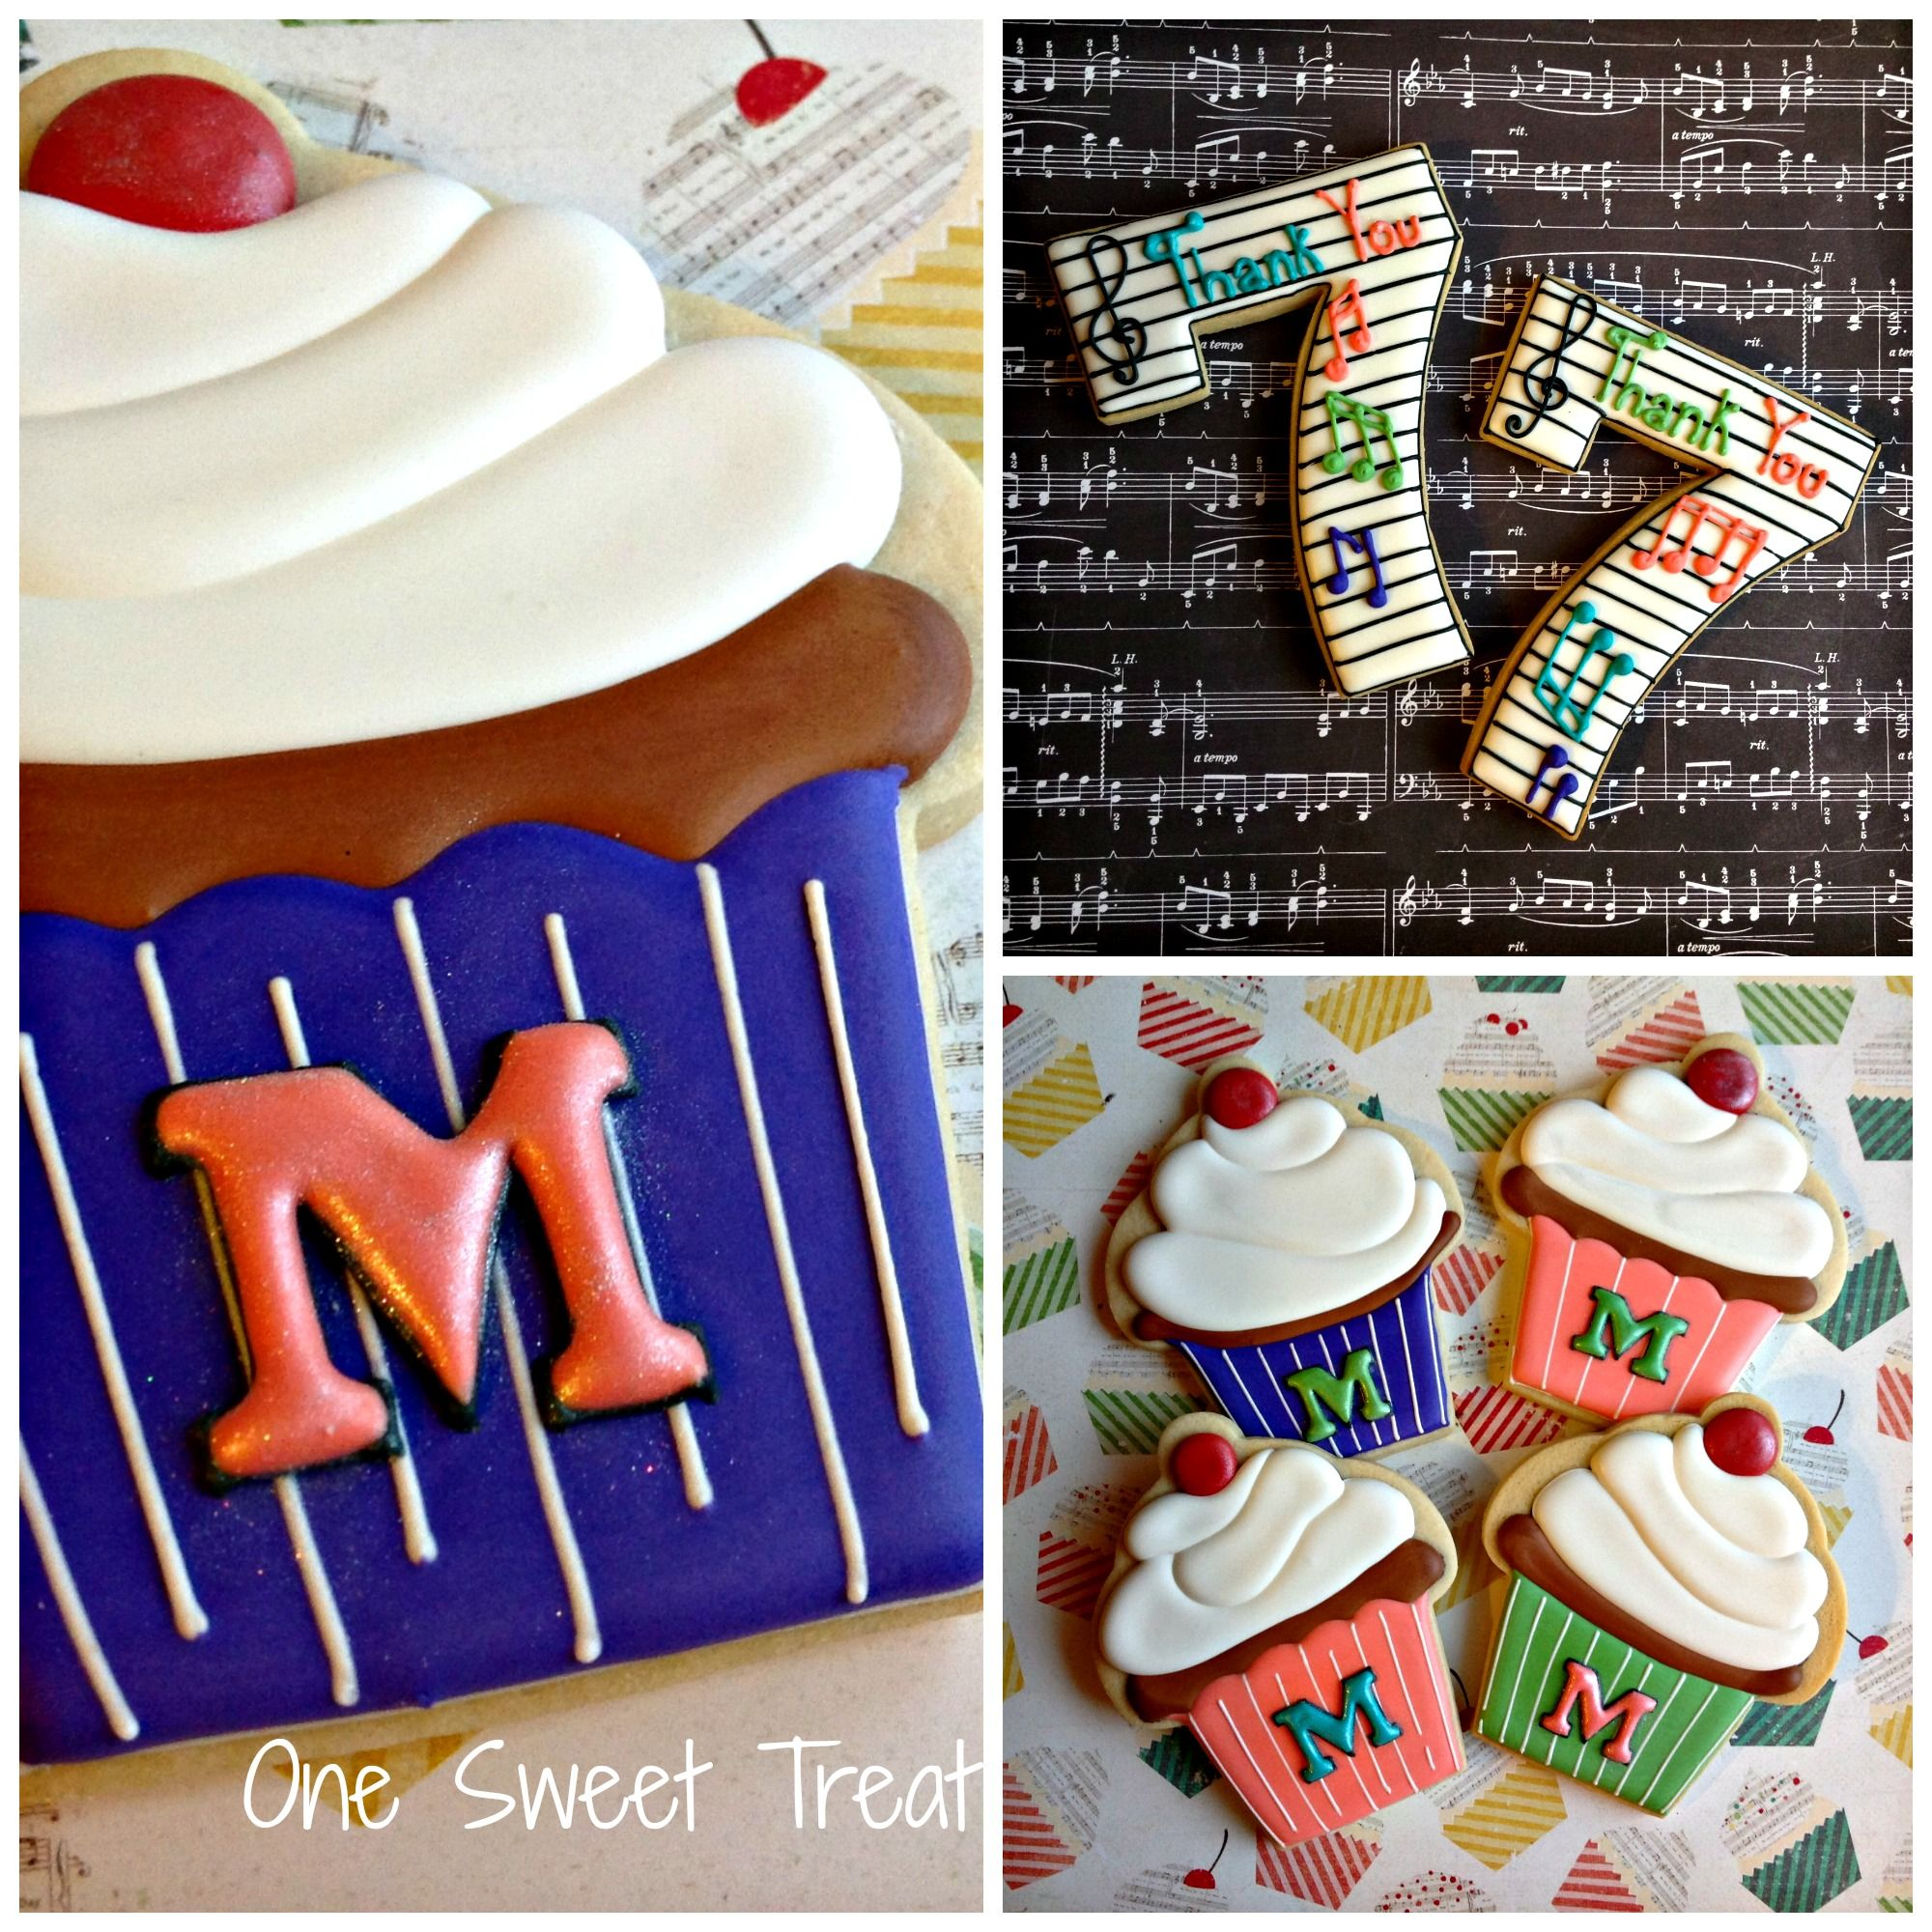 Cupcakes and numbers sugar cookies with images